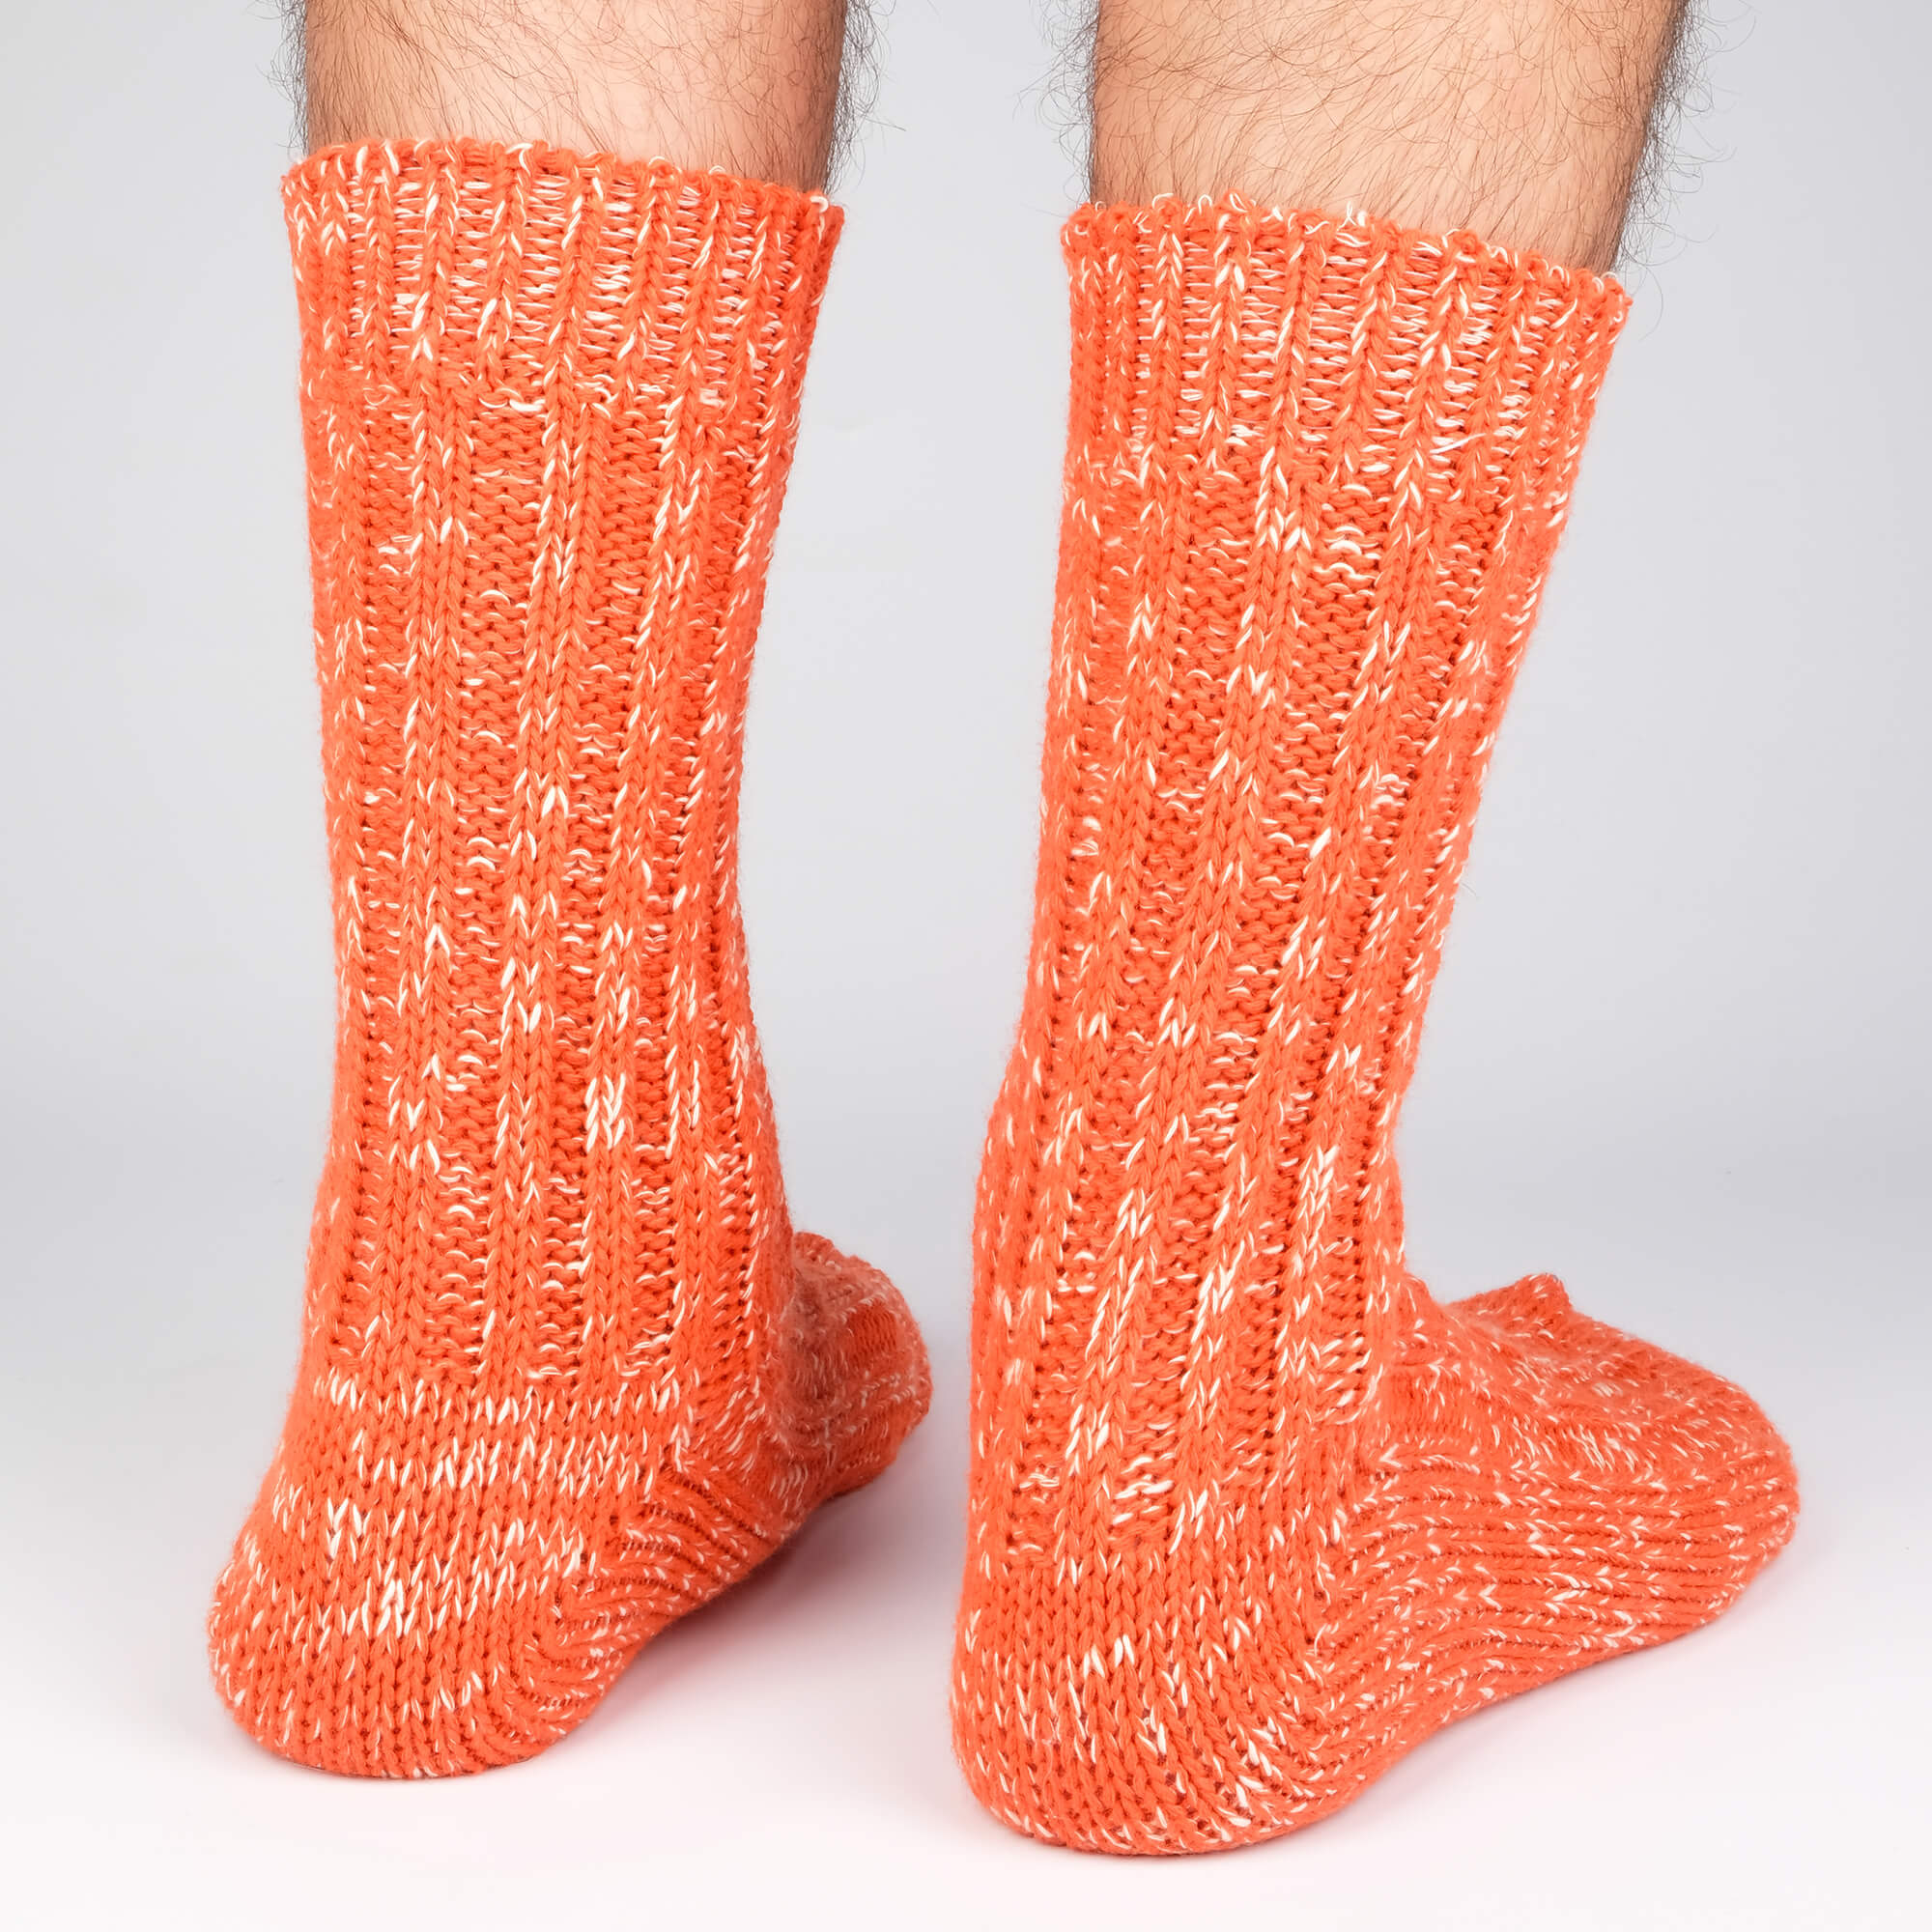 Mens Socks - Niseko - Orange⎪Etiquette Clothiers